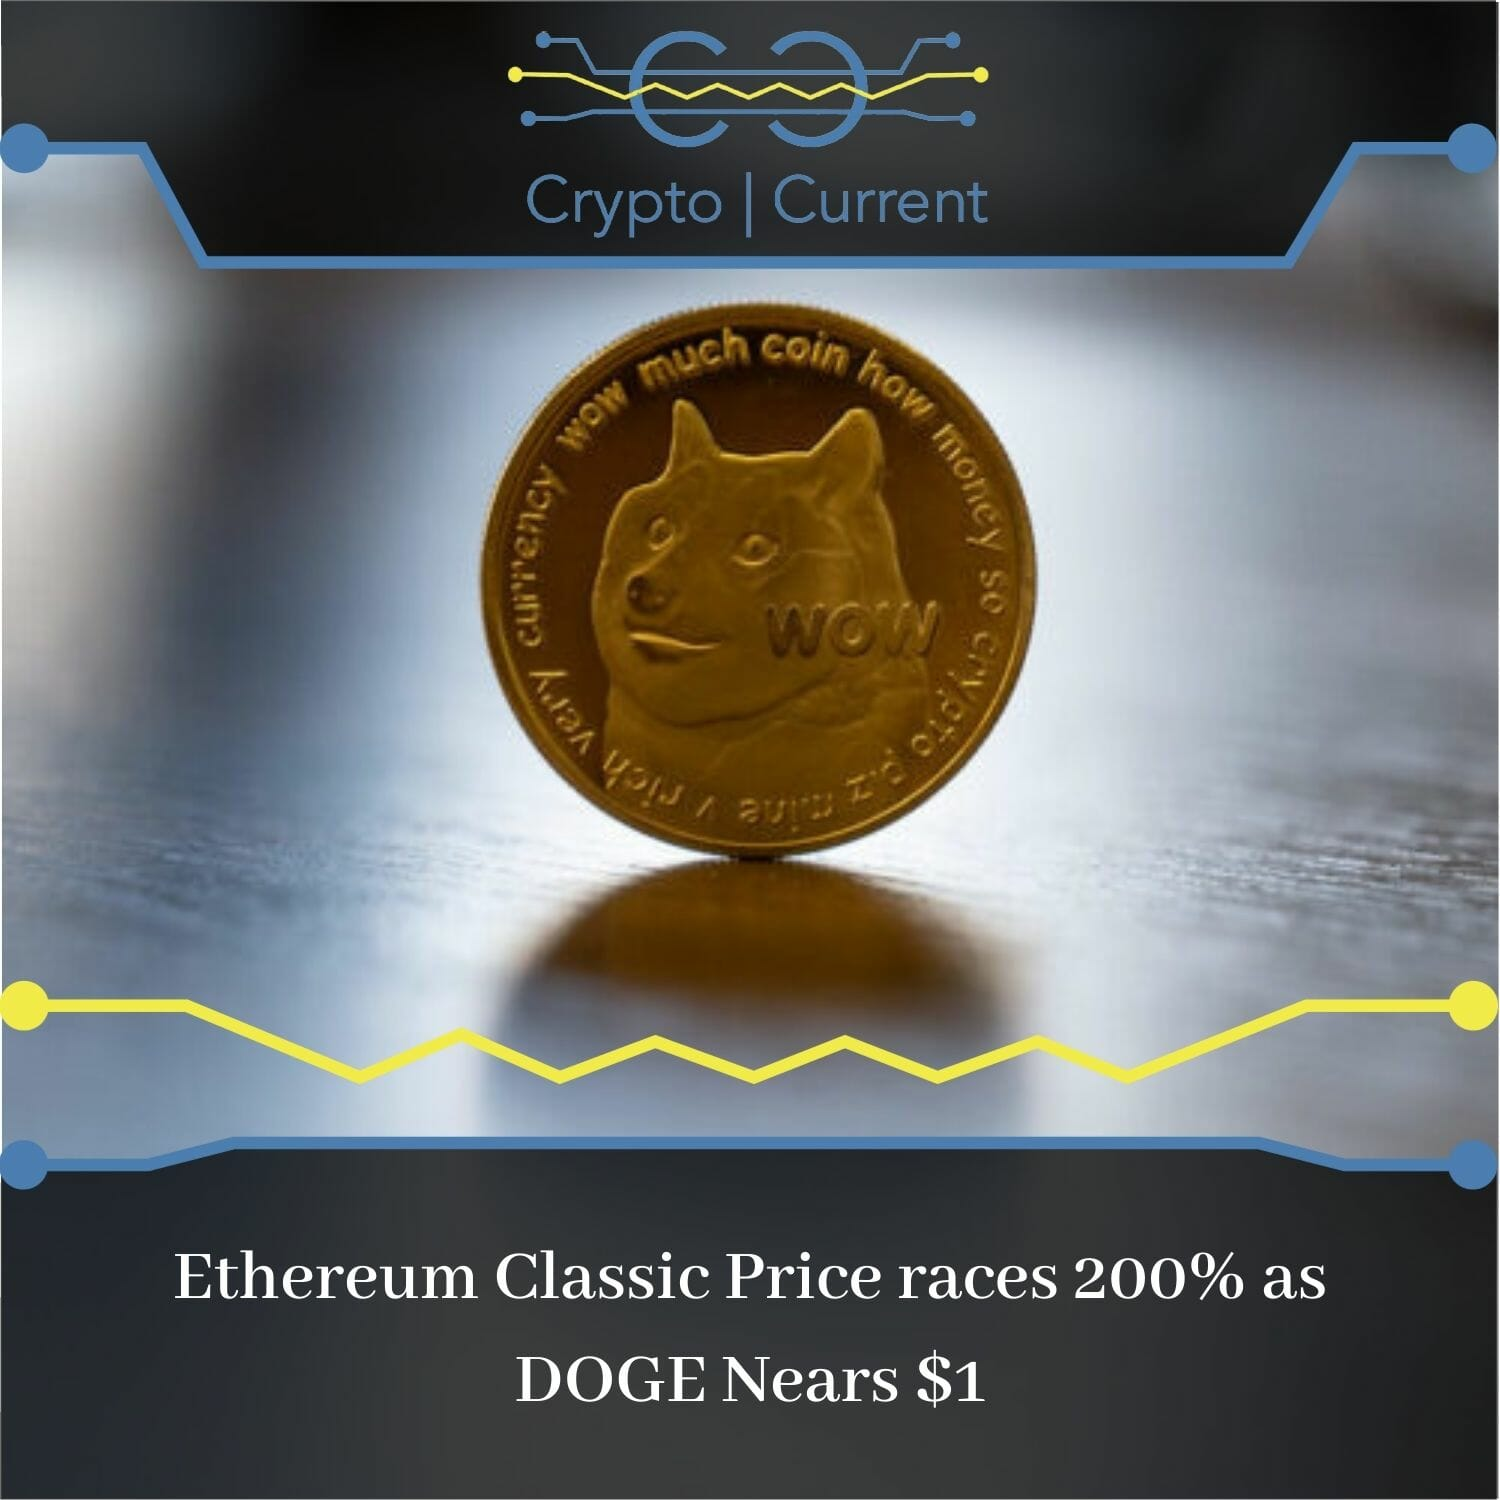 Ethereum Classic Price races 200% as DOGE Nears $1